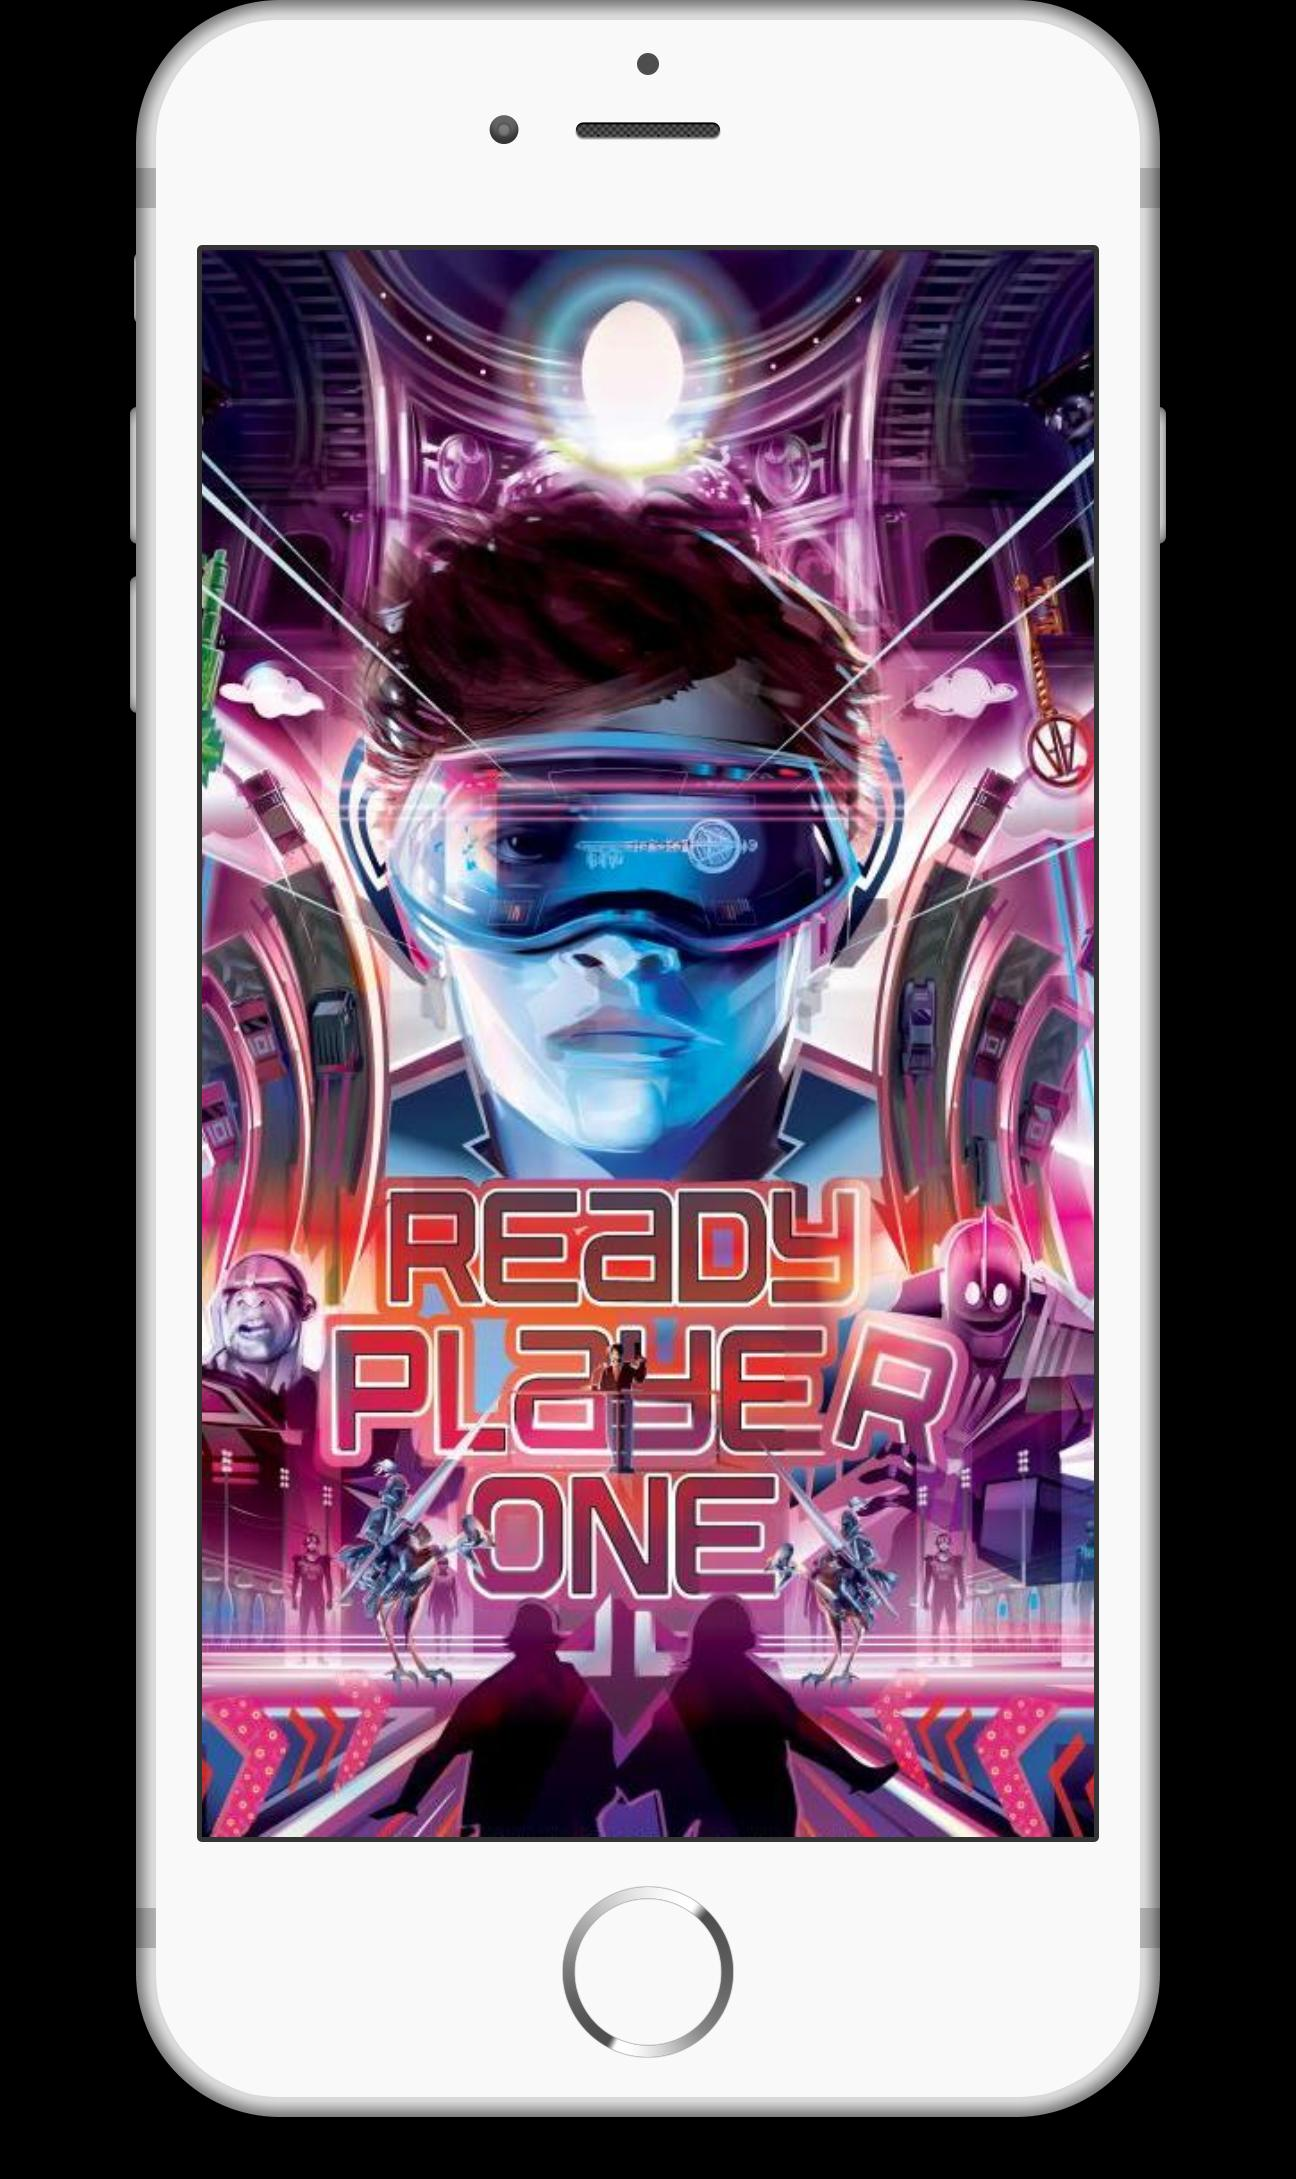 Ready Player One Wallpapers 4k Hd For Android Apk Download